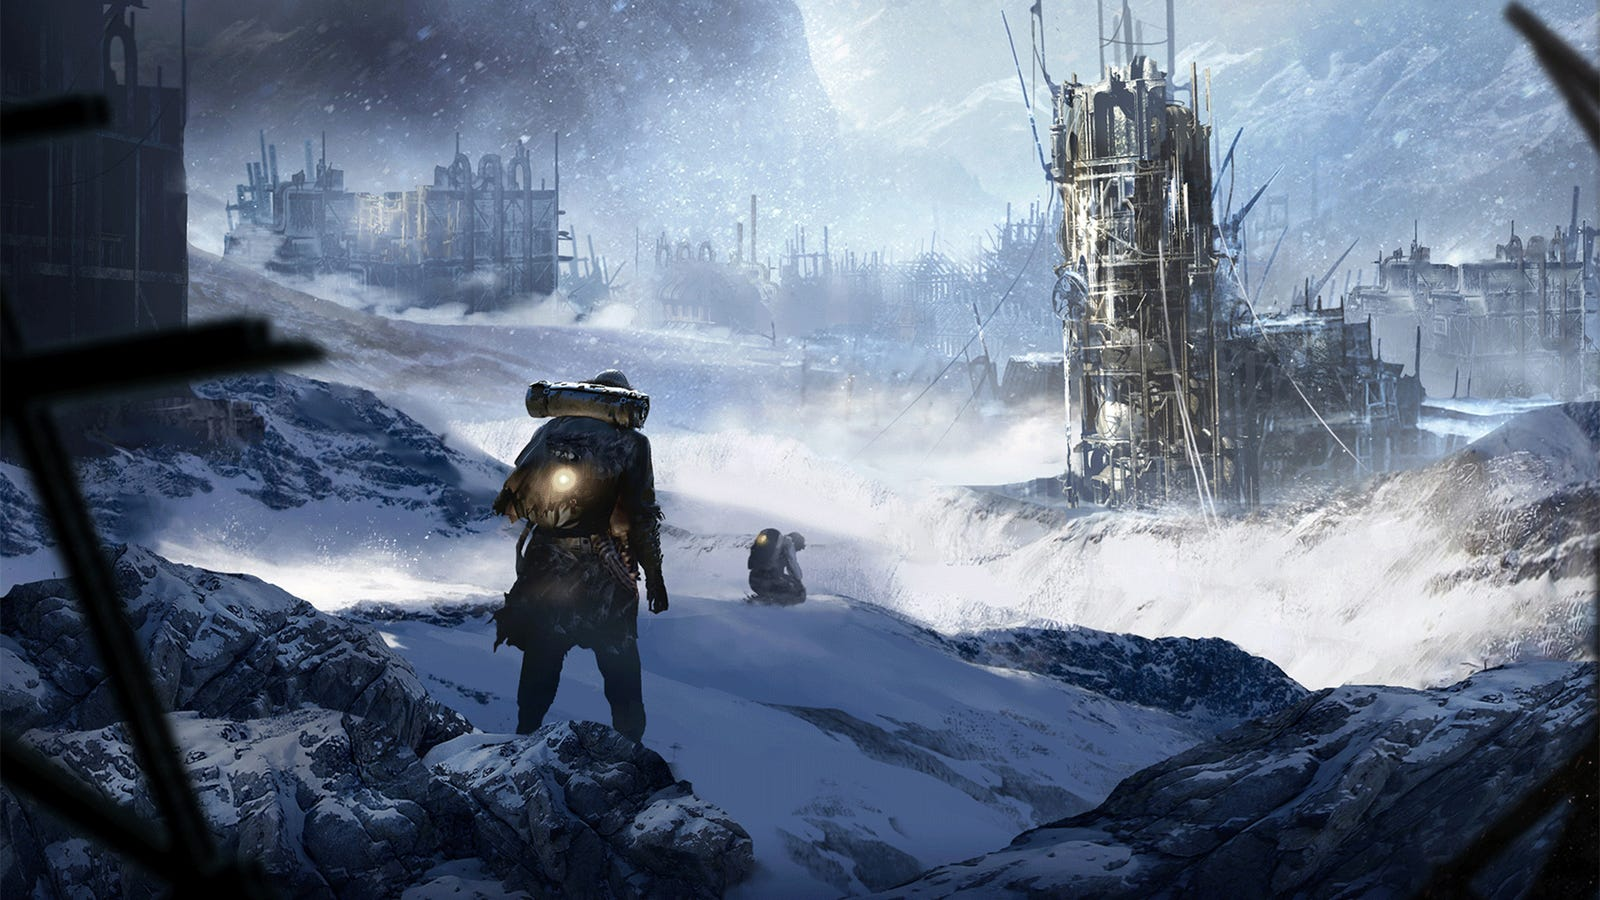 Frostpunk 2018 Game Wallpapers: The Art Of Frostpunk